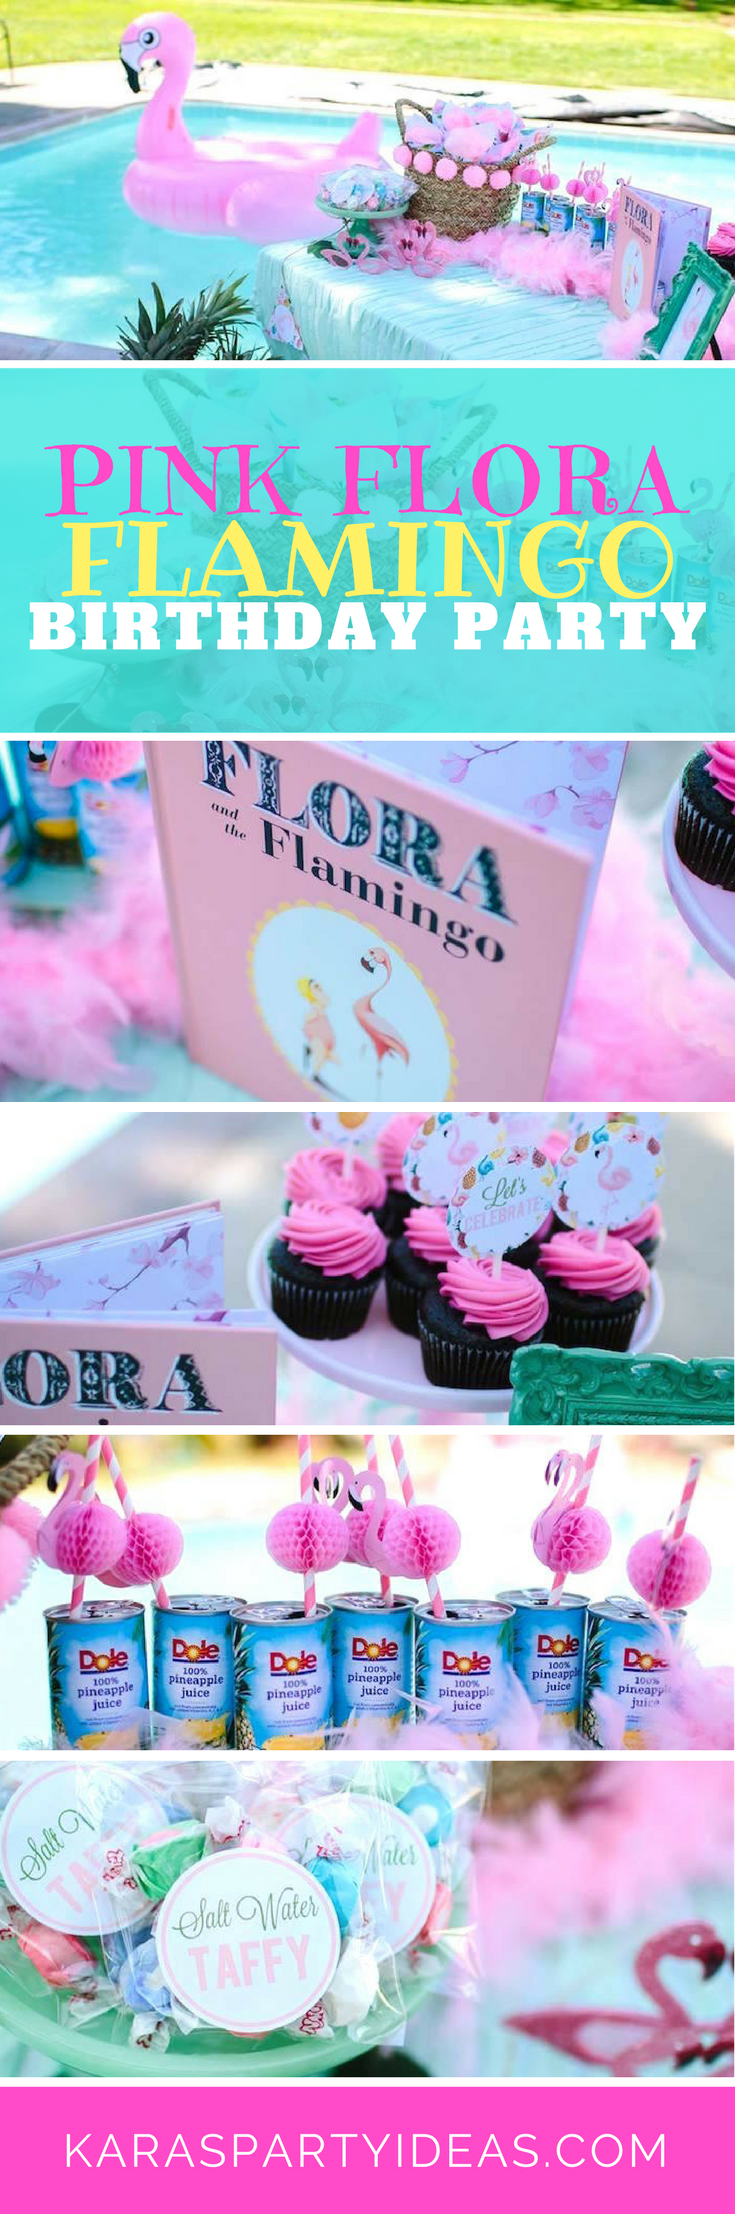 Pink Flora Flamingo Birthday Party via Kara's Party Ideas - KarasPartyIdeas.com